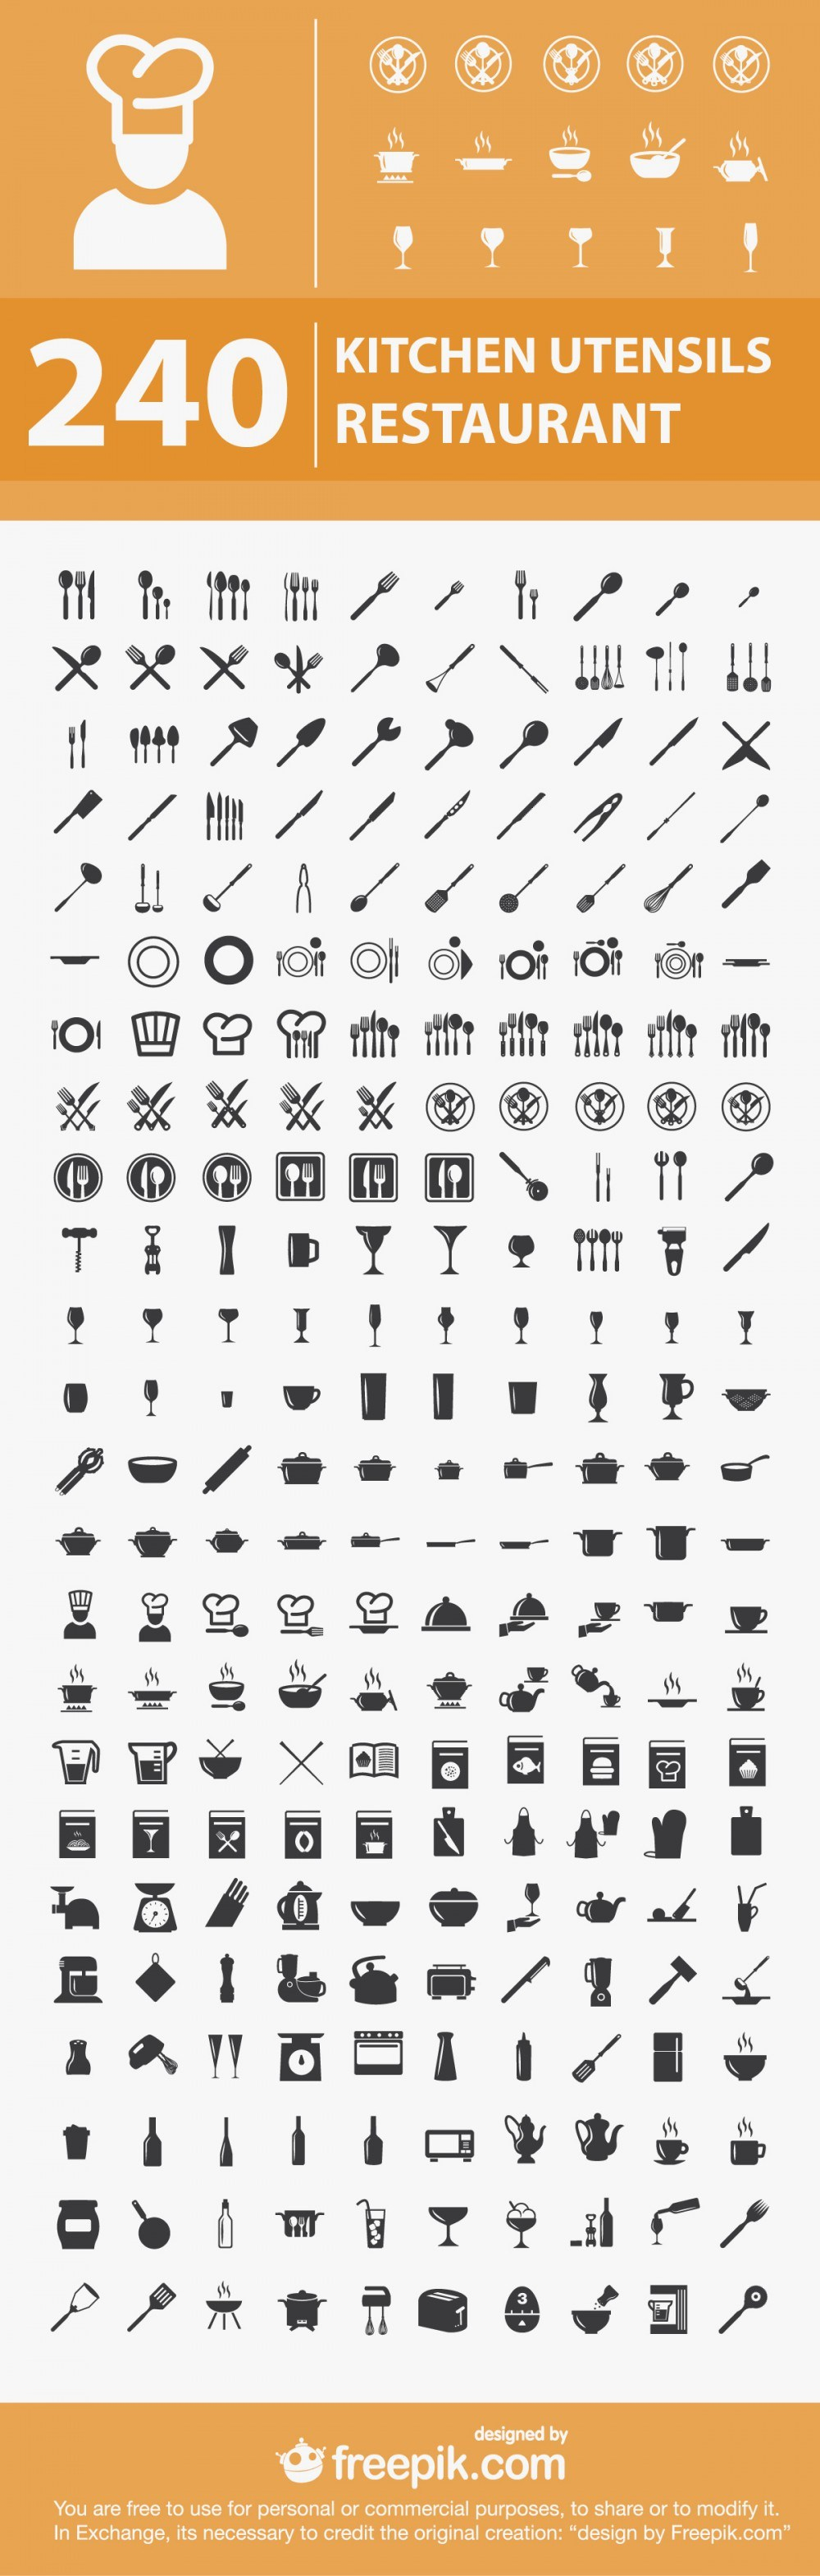 240-free-kitchen-restaurant-icons